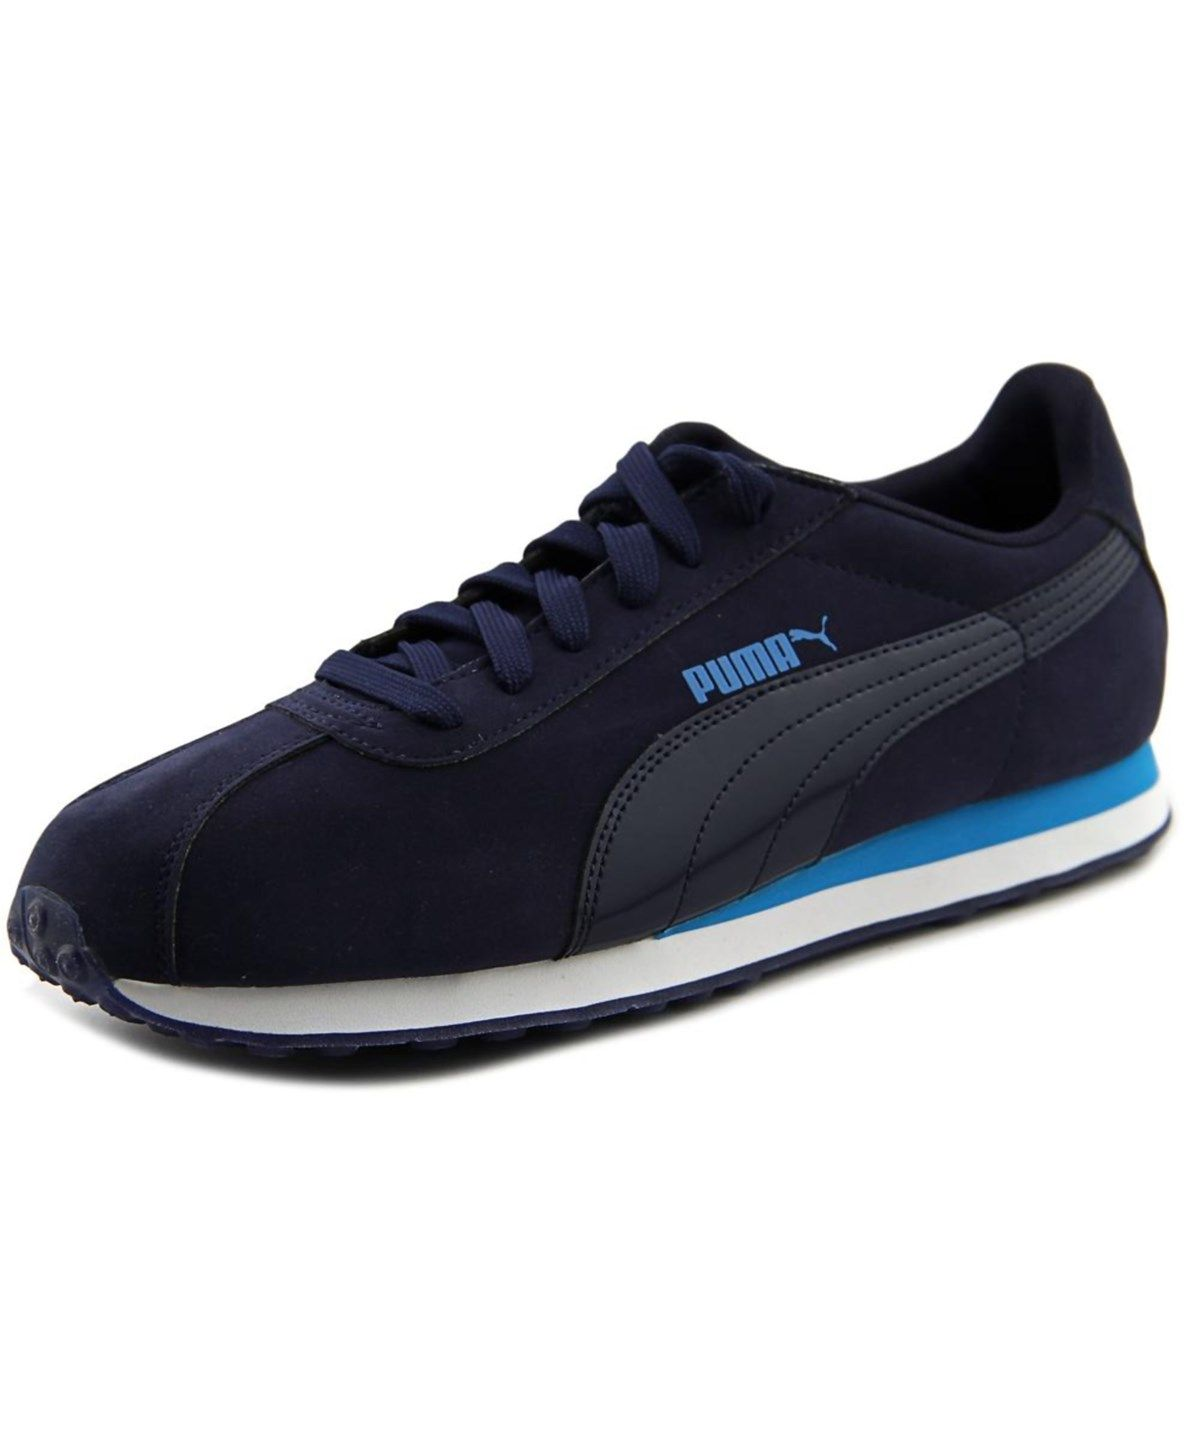 PUMA. Blue SneakersShoes SneakersTurinPumas ...